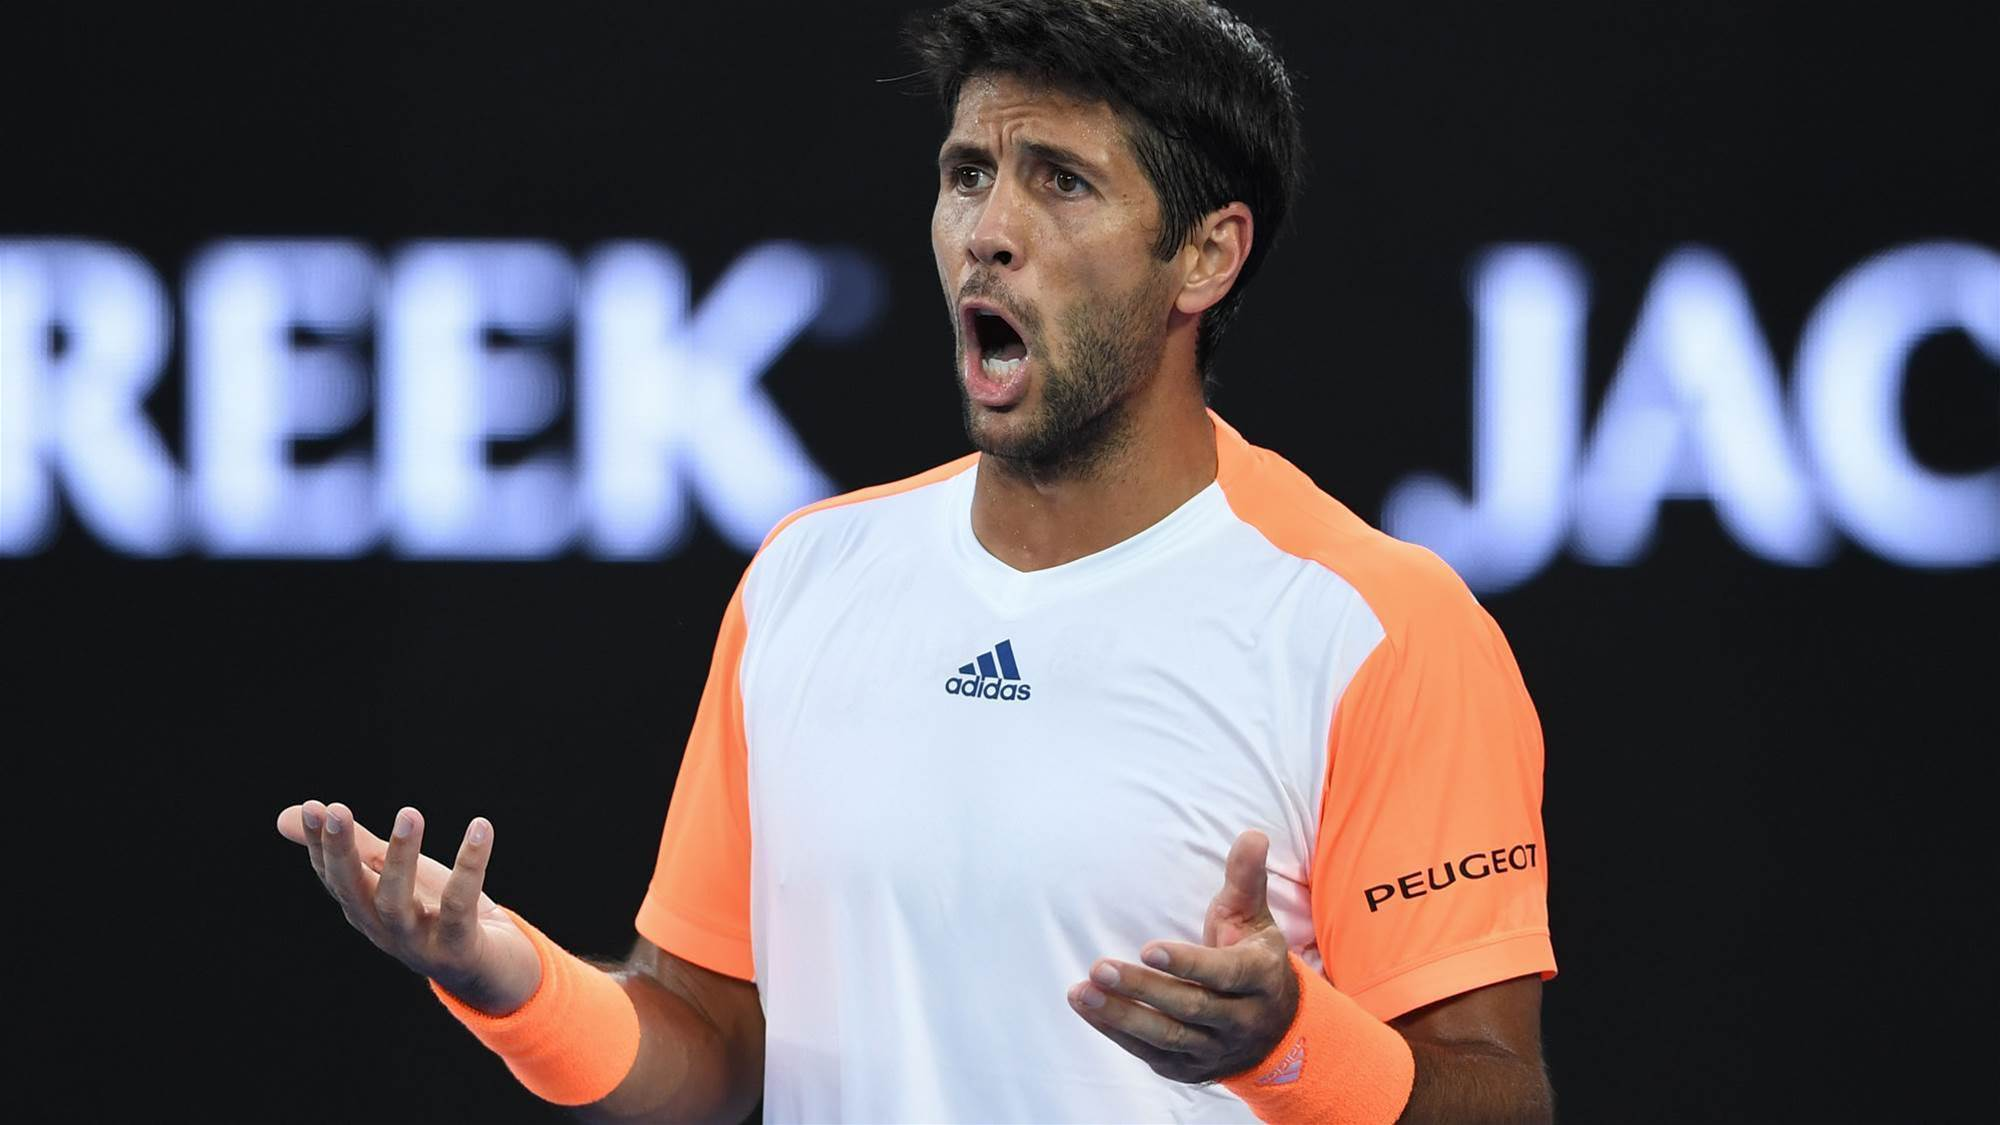 Verdasco slams court condition after loss to Djokovic